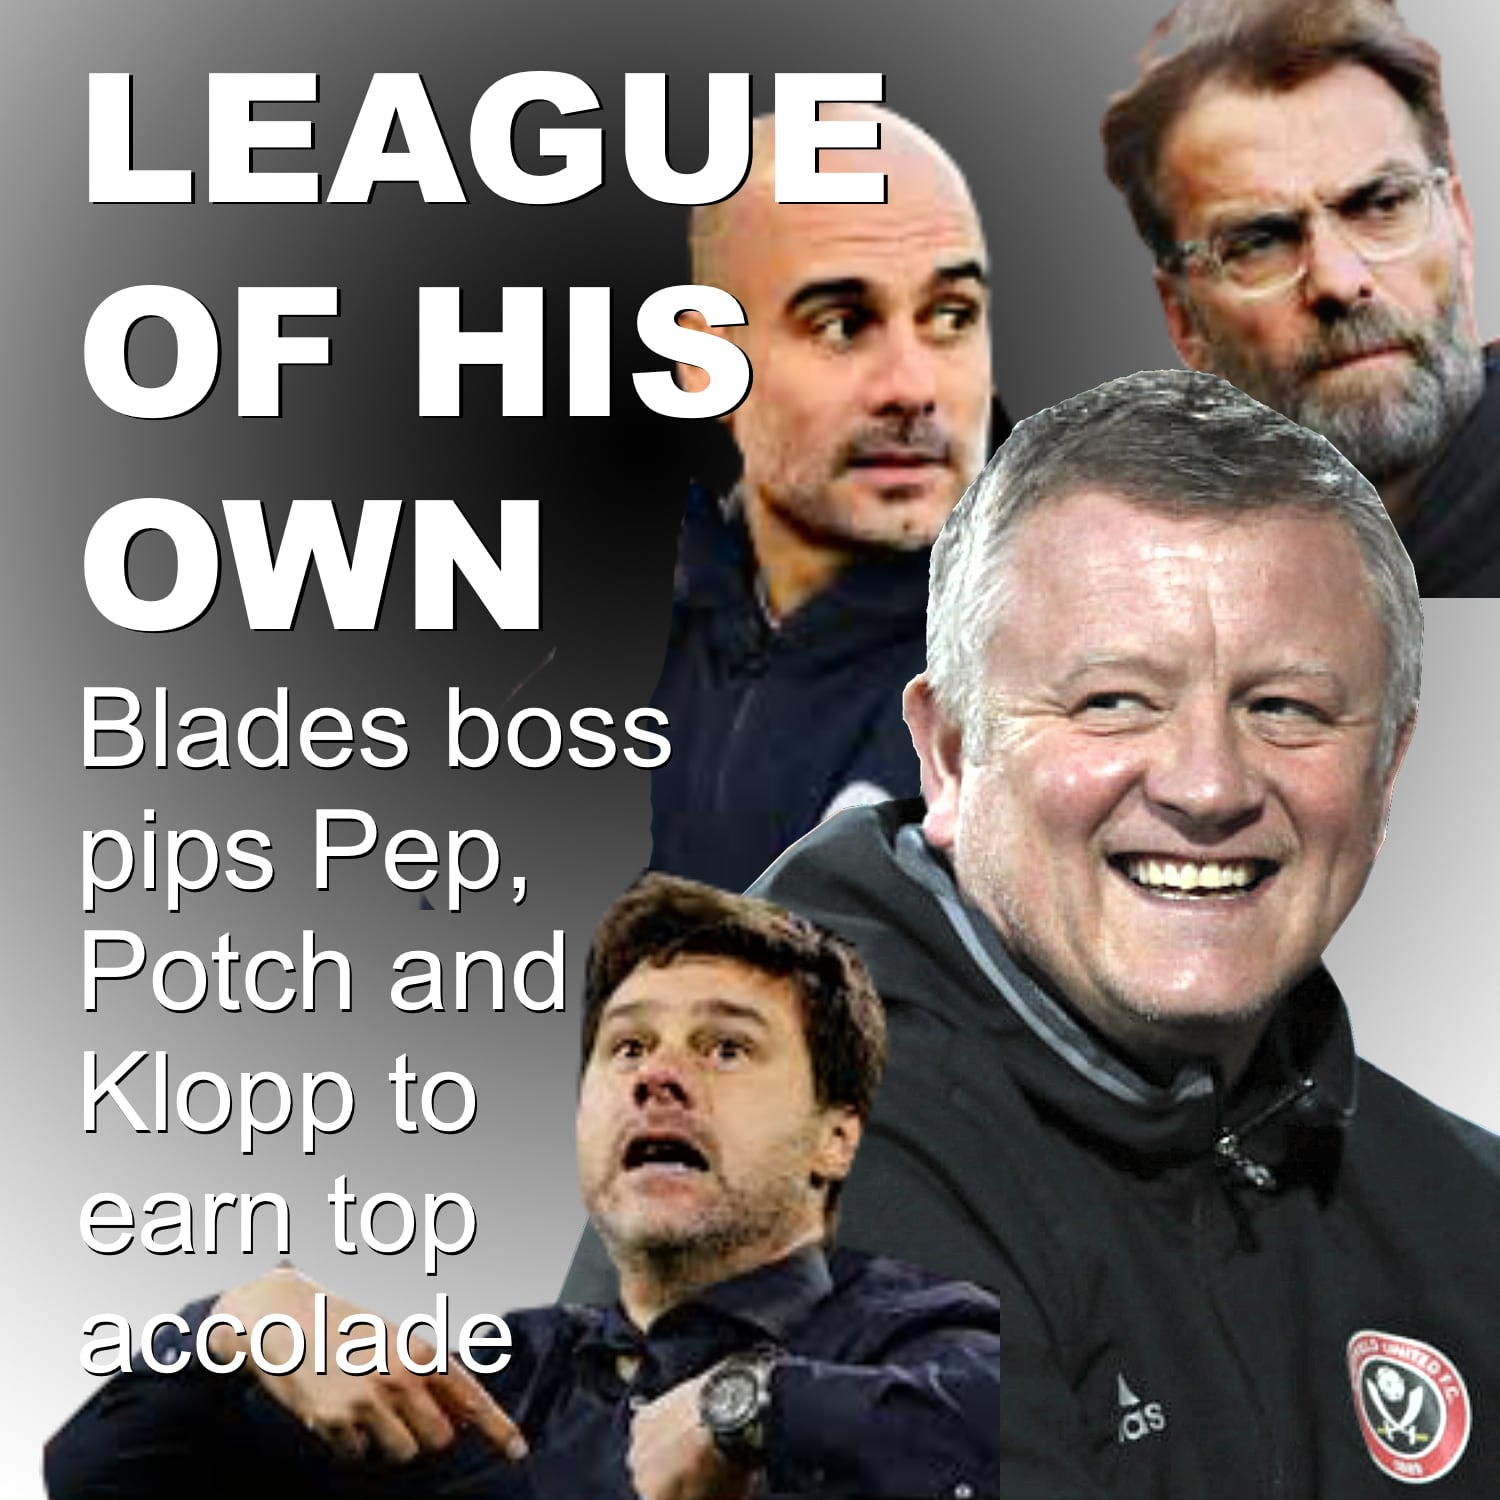 Sheffield+United+boss+pips+Pep,+Potch+and+Klopp+to+earn+LMA's+top+accolade.jpeg